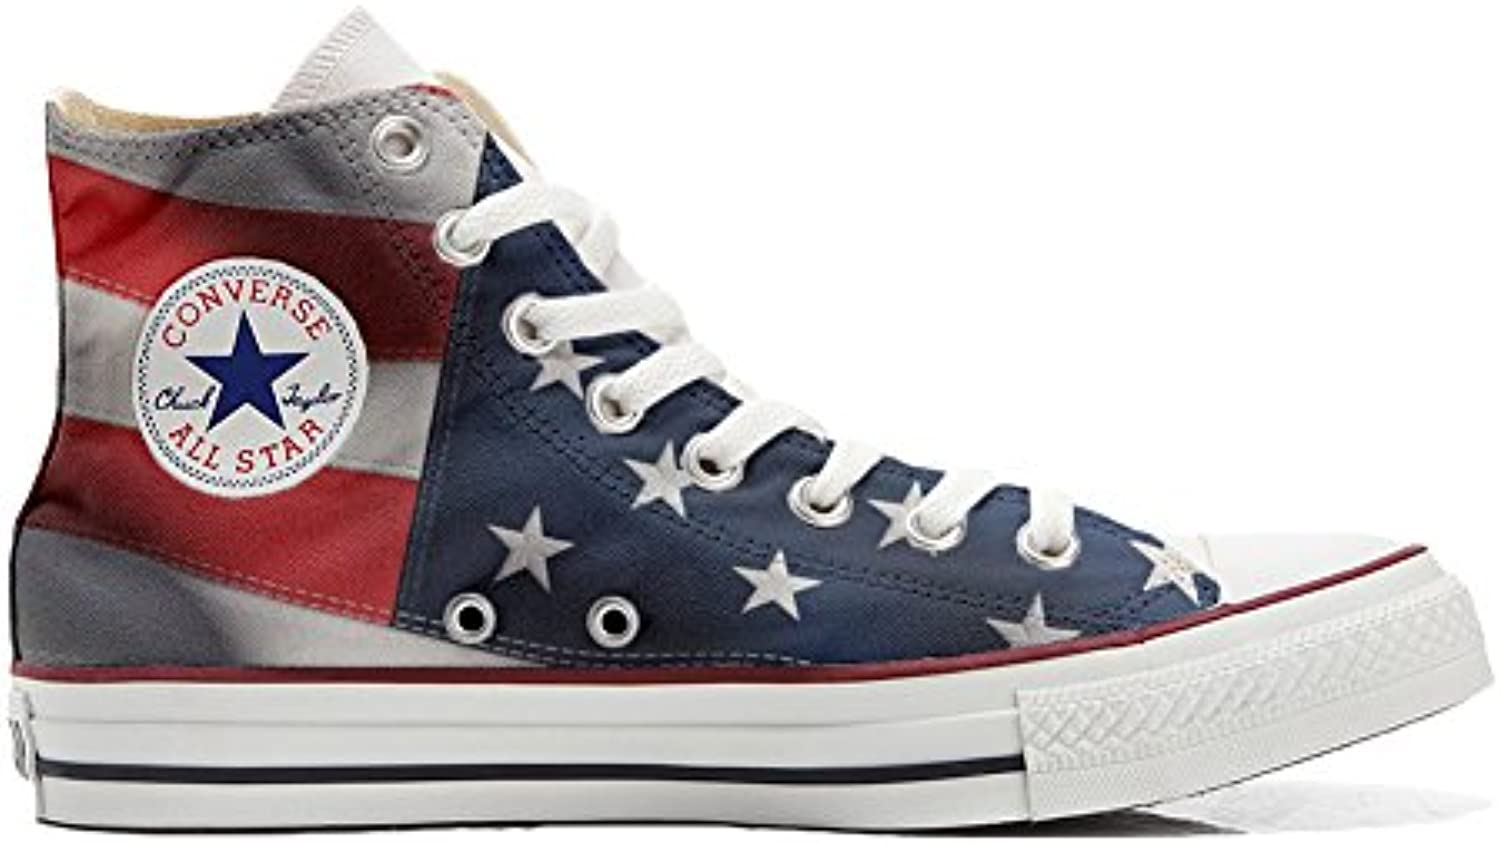 mys Converse All Star Hi Customized Personalisiert Schuhe Unisex (Gedruckte Schuhe) American Flag (USA)